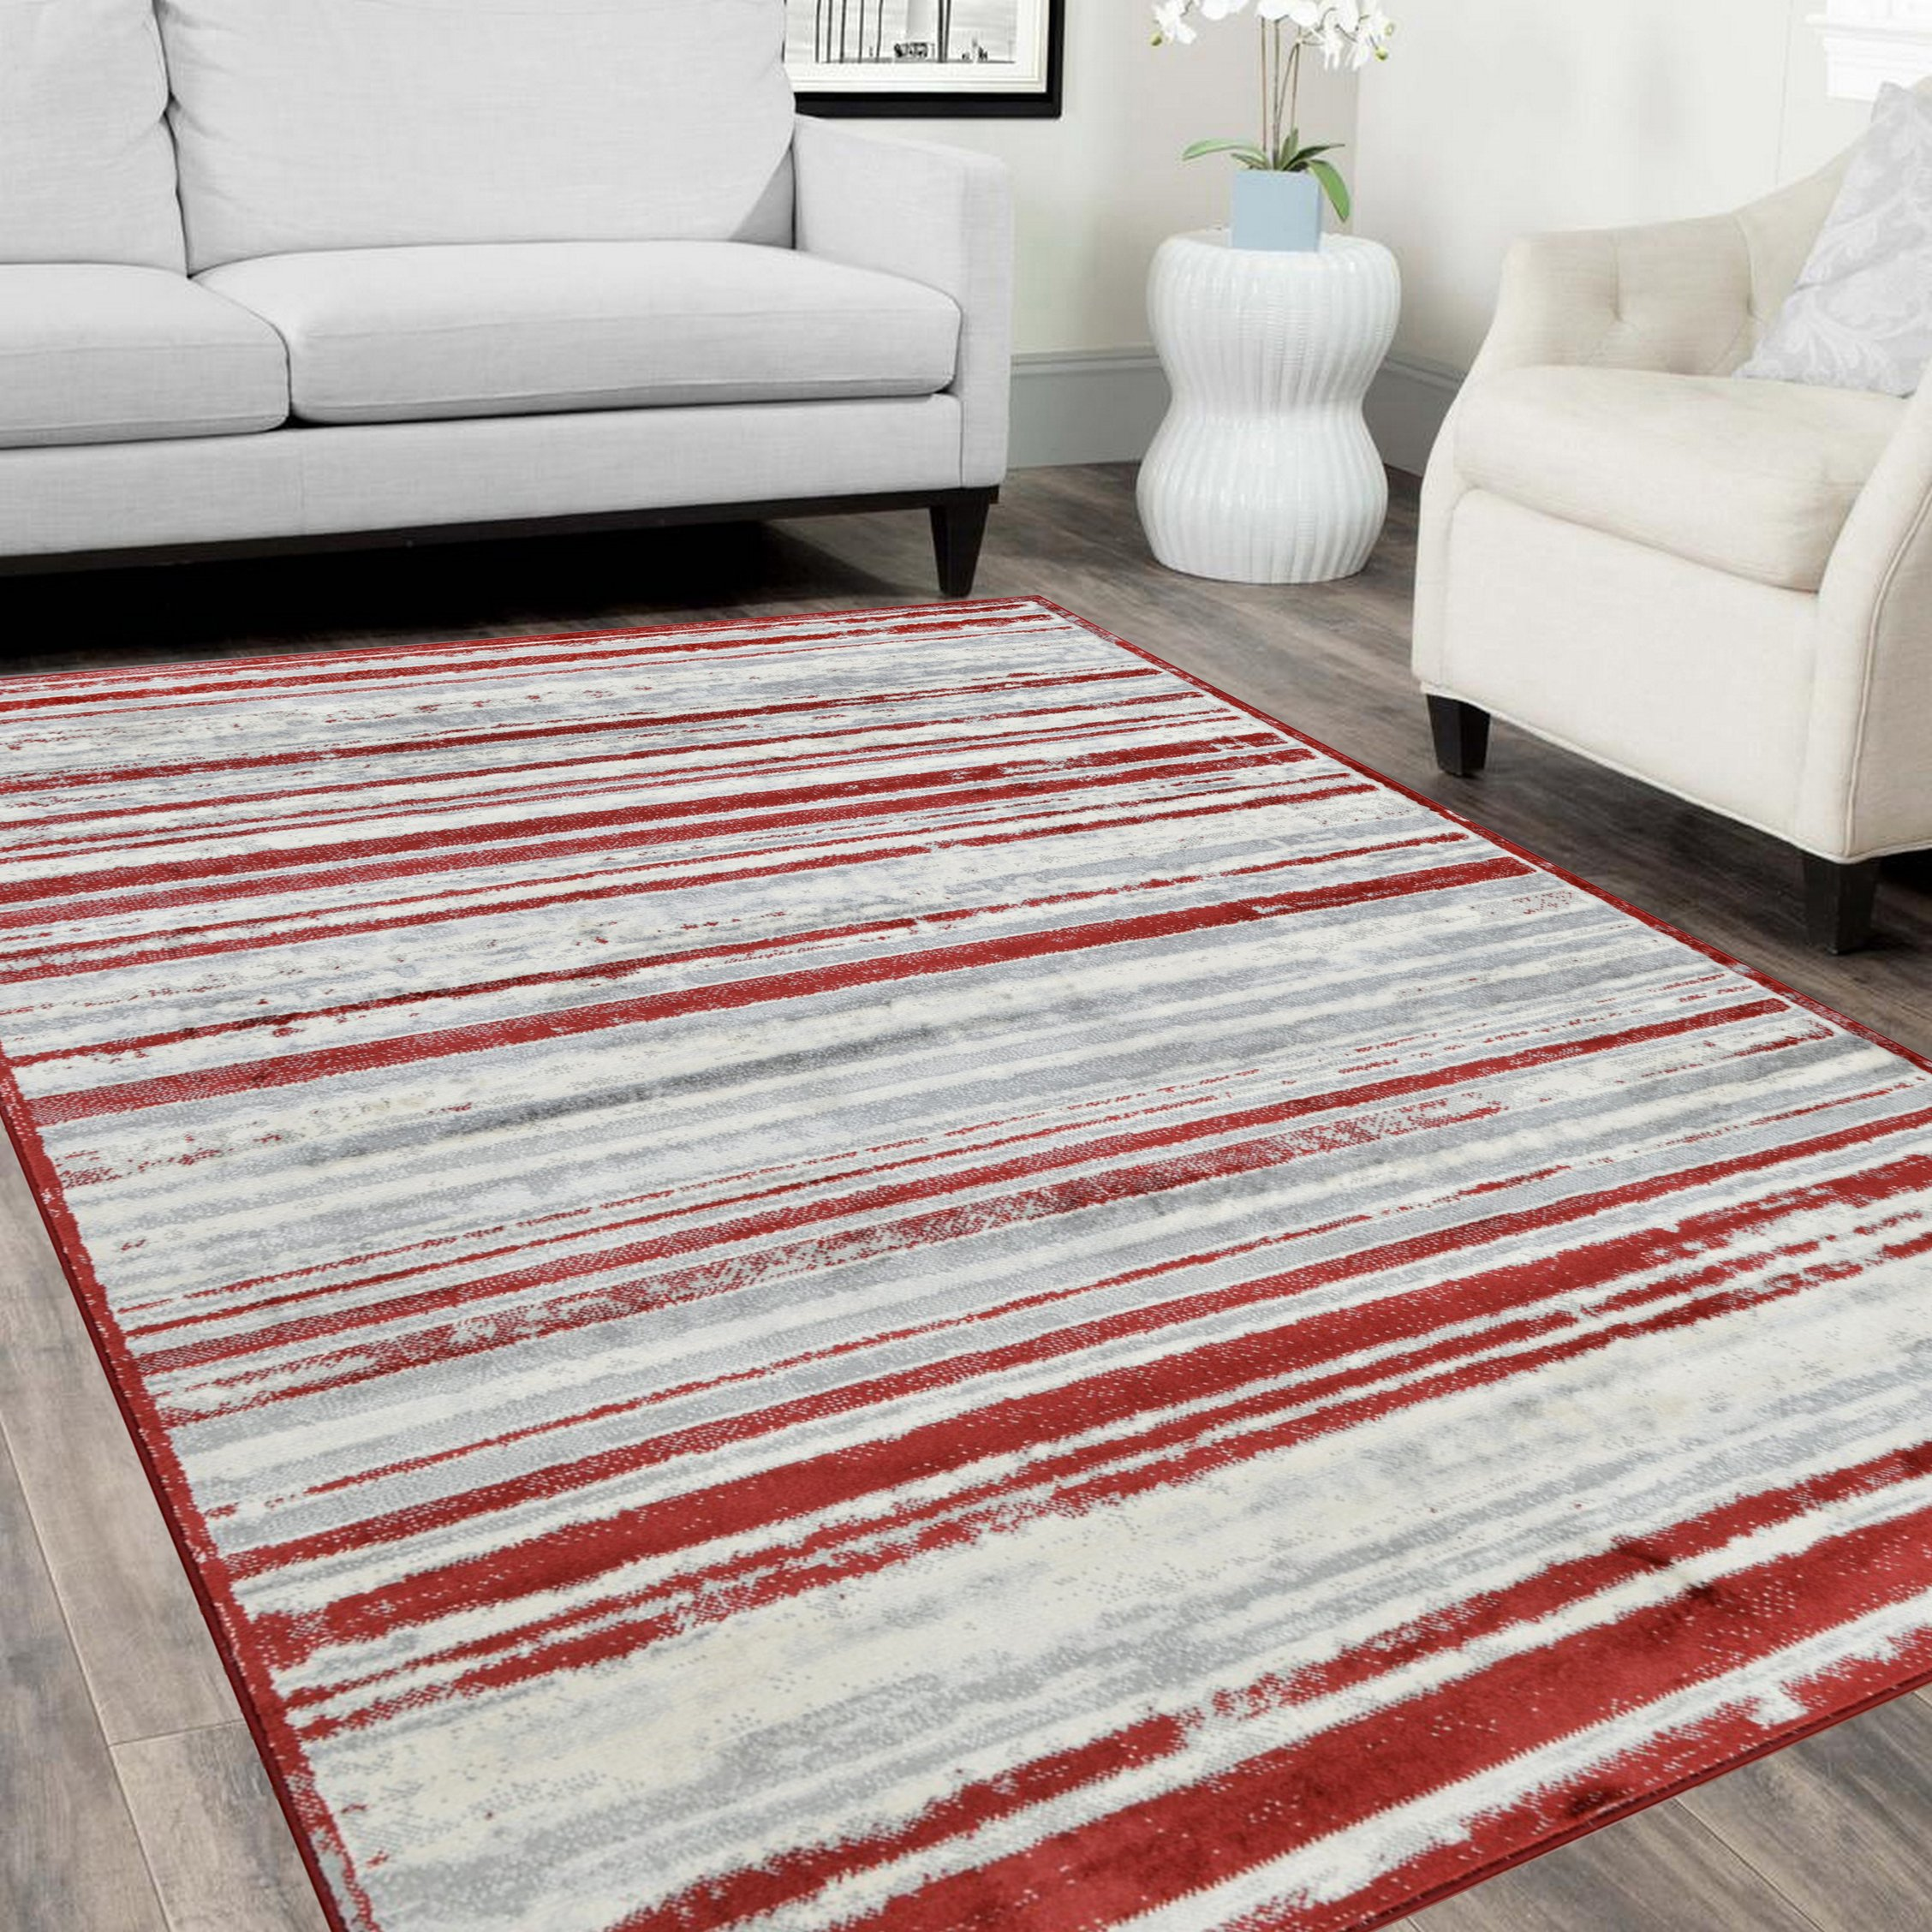 HR Red & Gray Rugs Stripped Pattern Area Rug 5x7 Contemporary Carpet Gray Ultra Soft Luxury ...